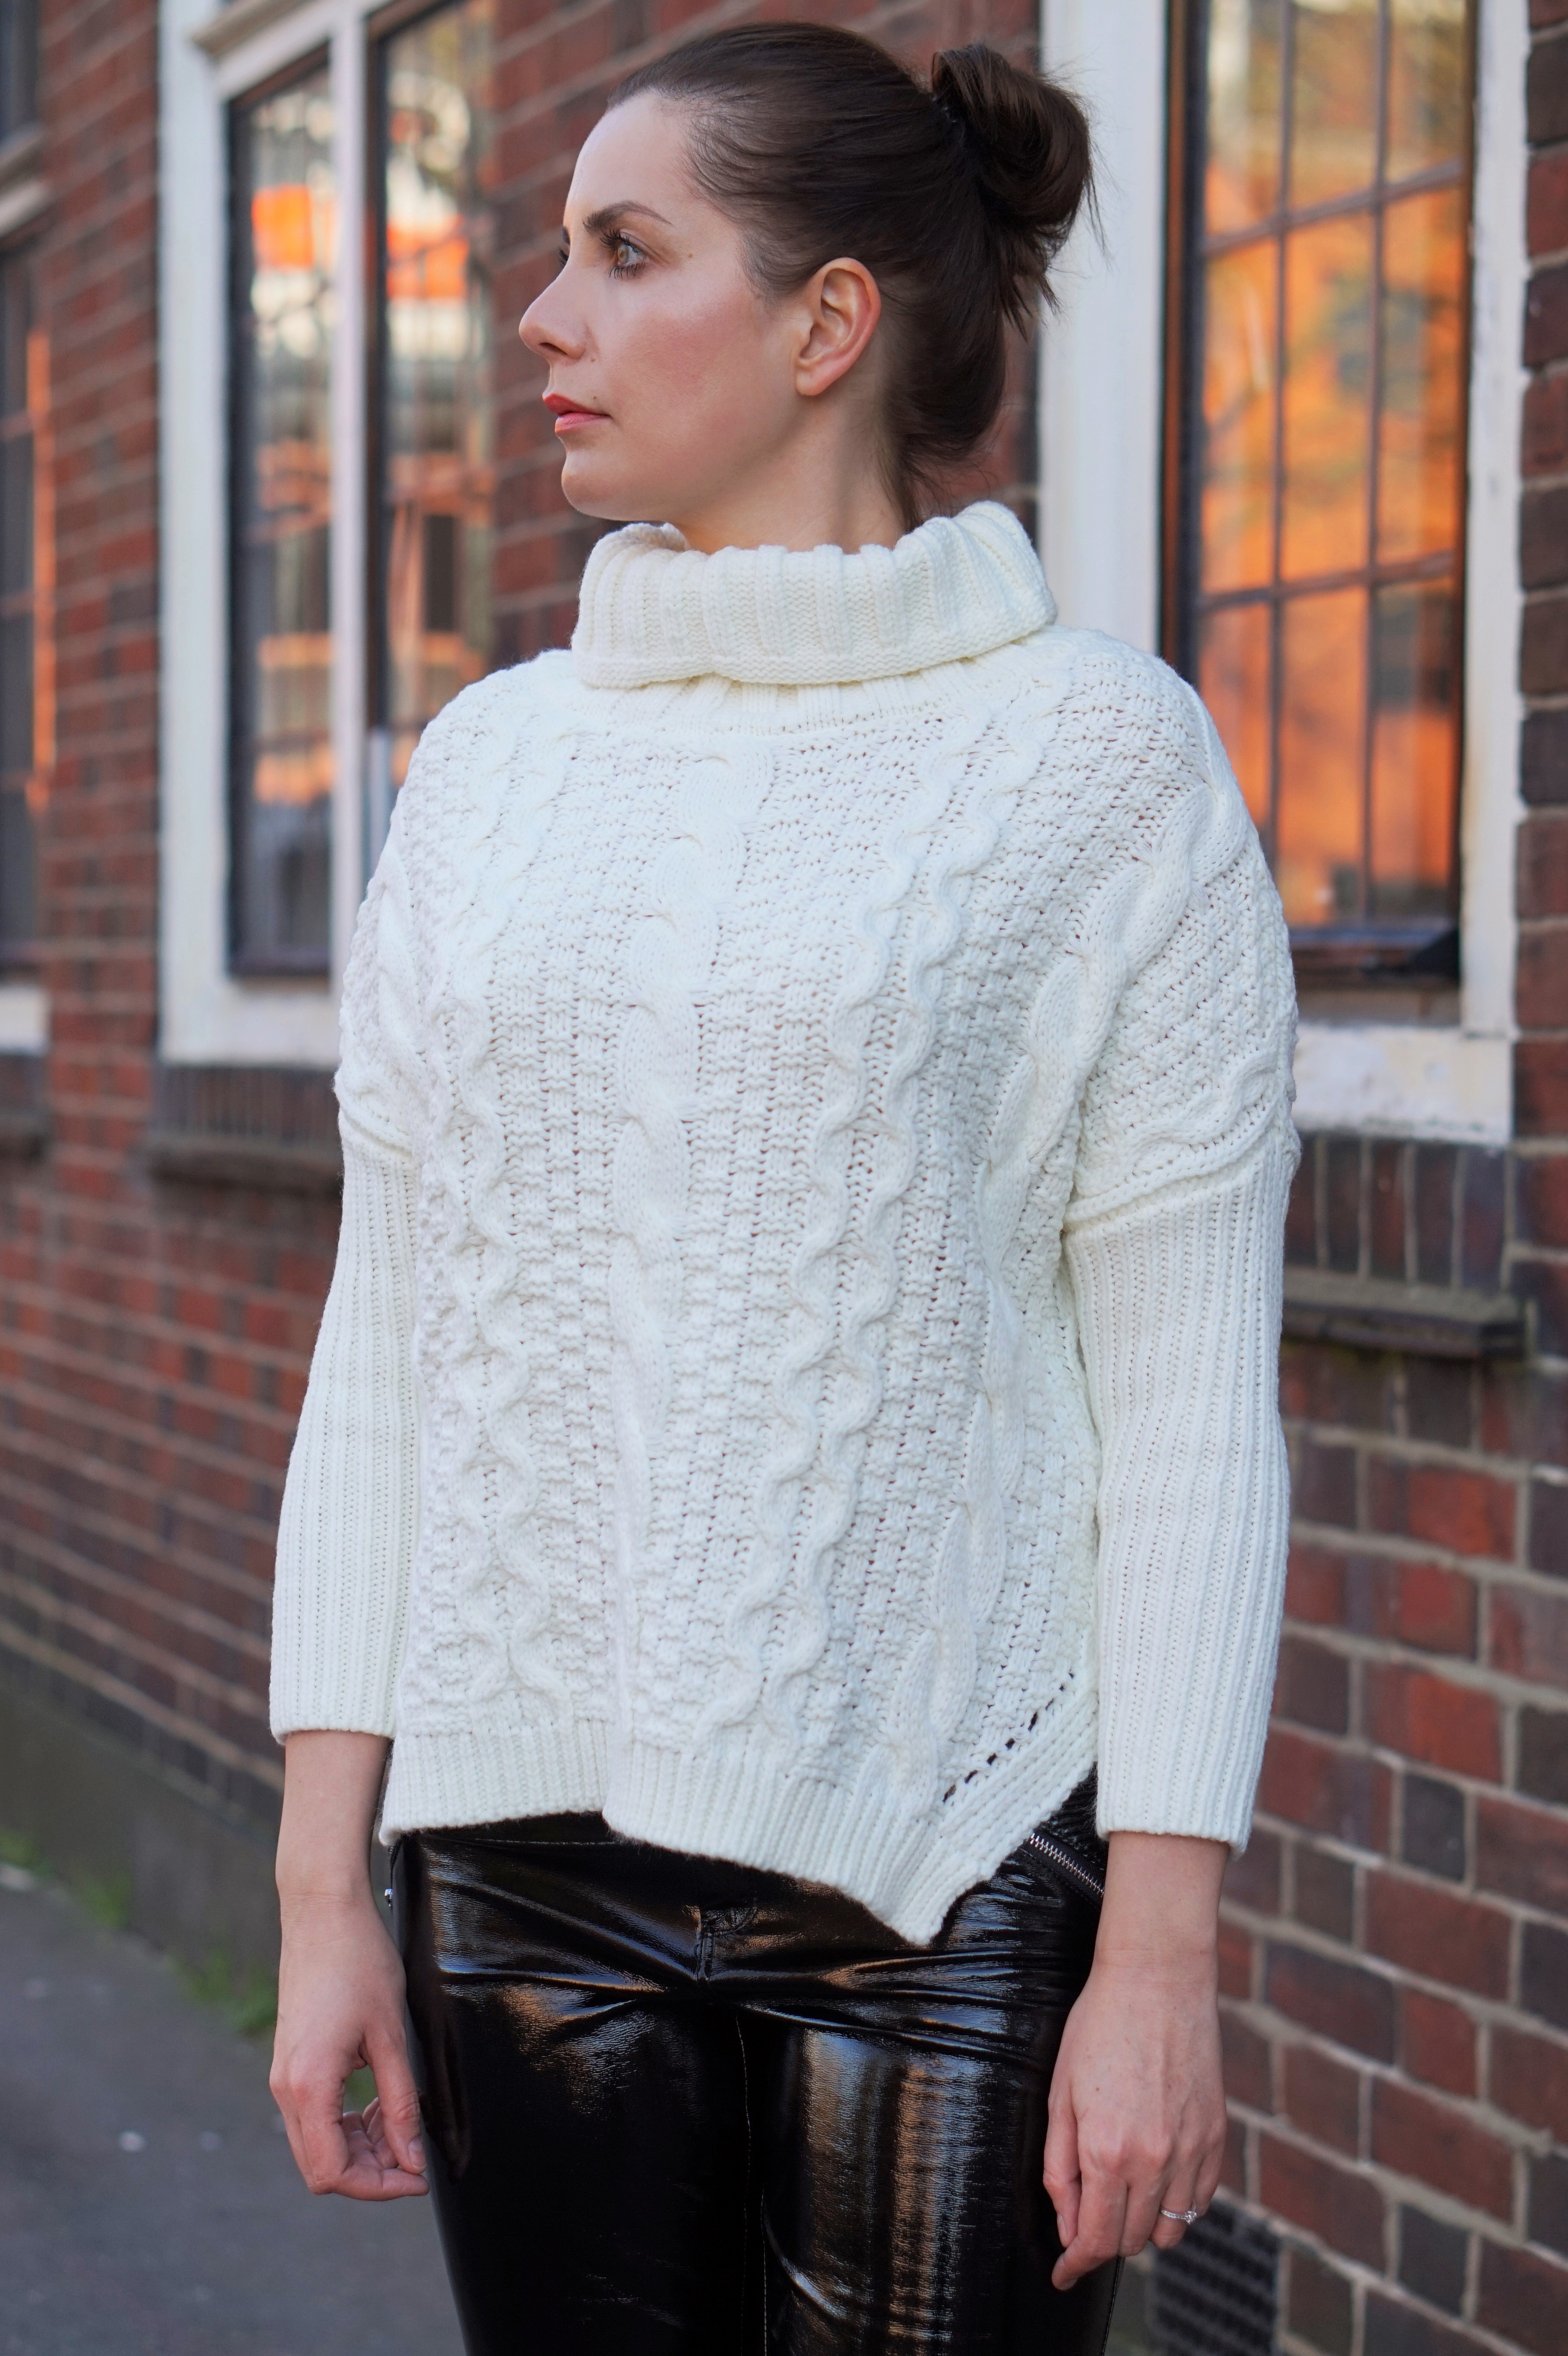 Chunky Cable Knit Sweater Fresh Turtleneck Chunky Cable Knit Sweater Gloryofthesnow Of Attractive 42 Images Chunky Cable Knit Sweater